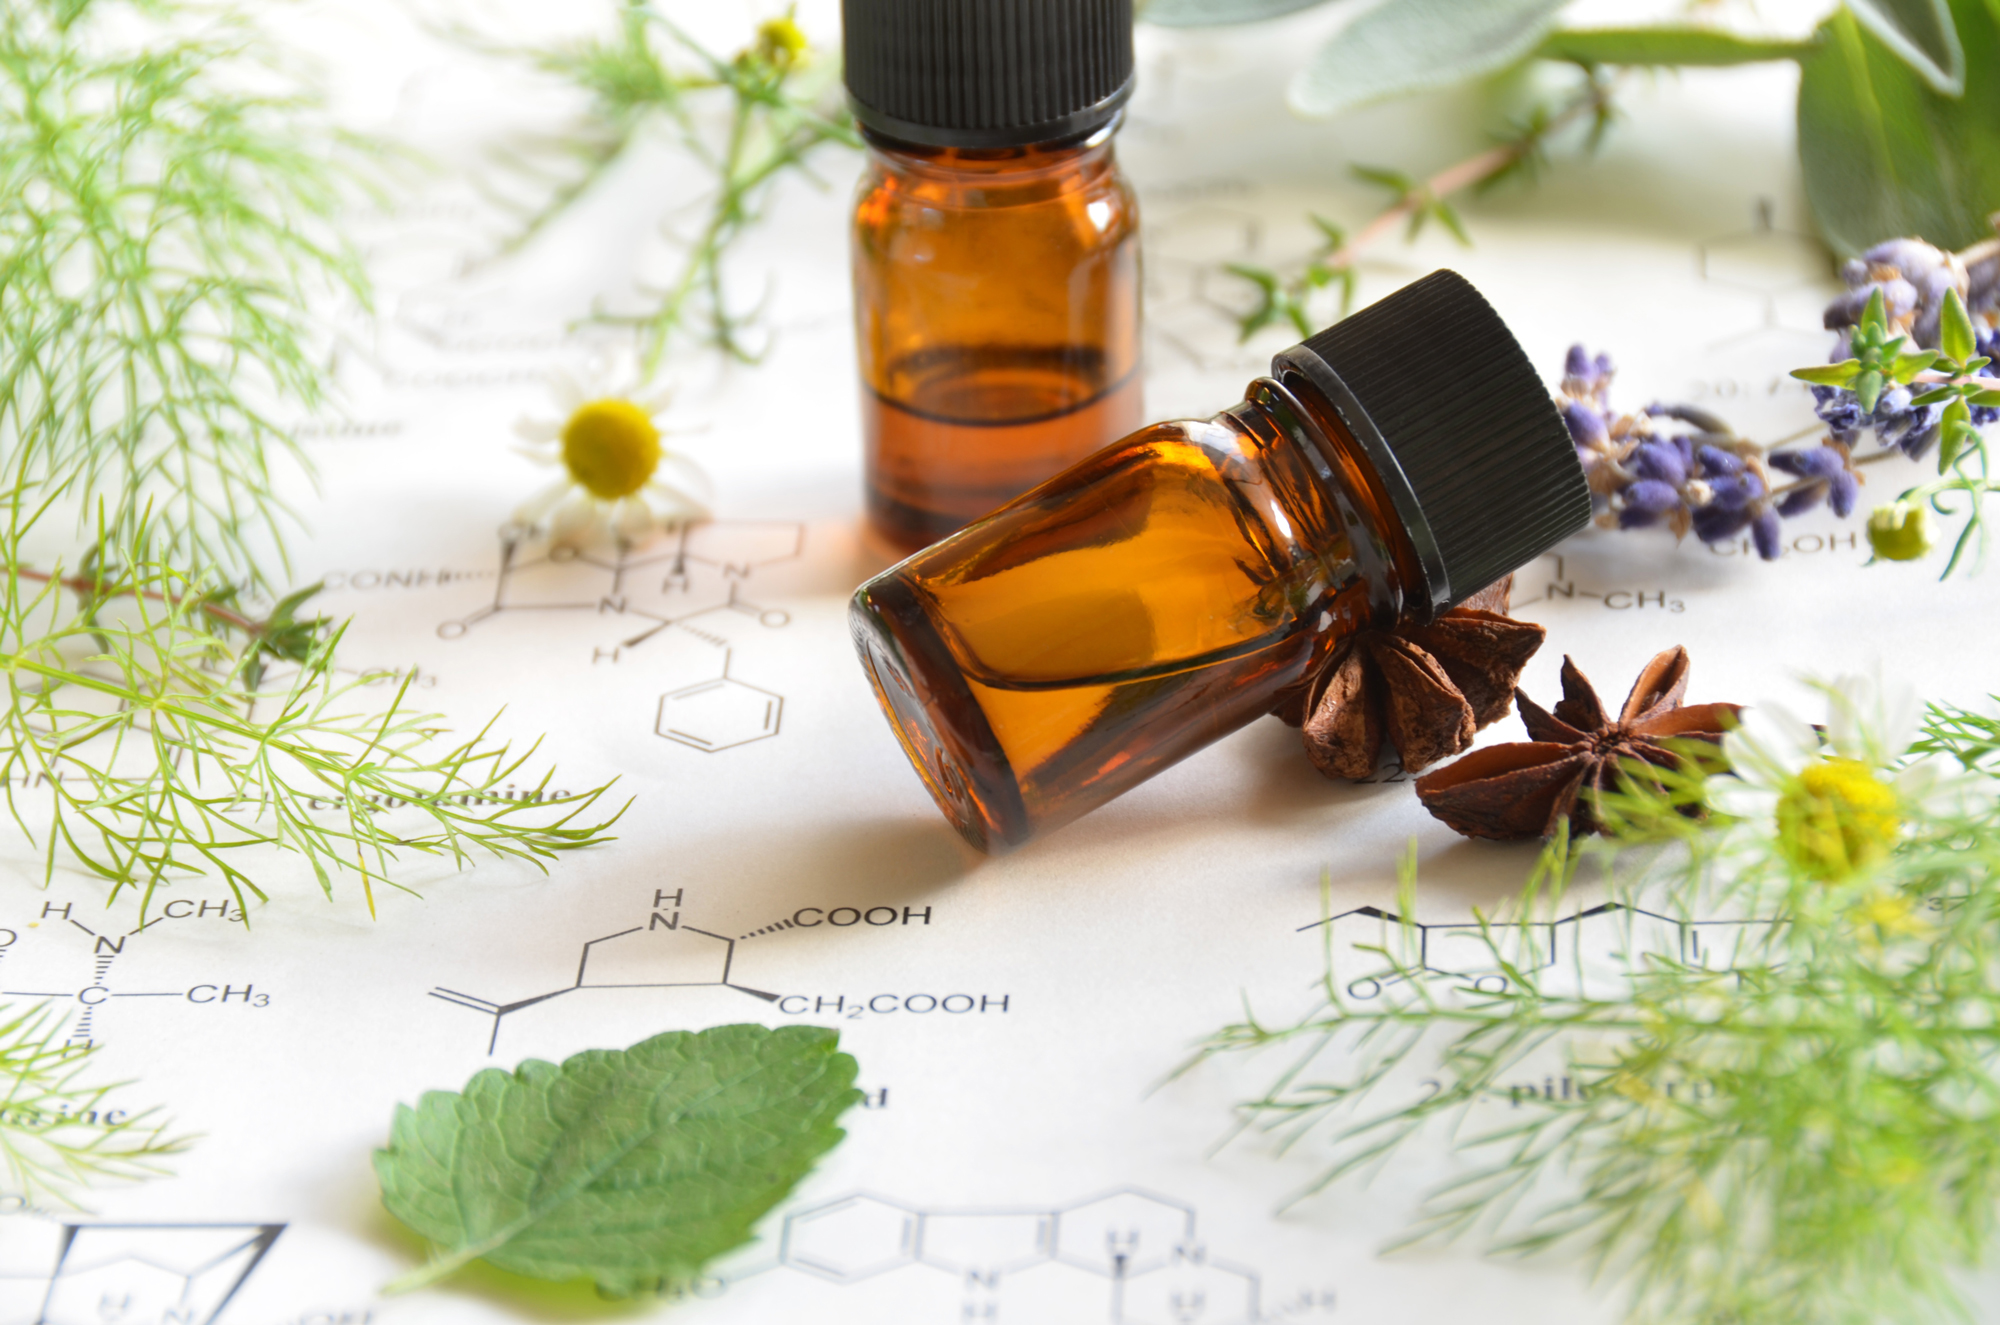 a.scent filled life - Essential oils are revolutionizing the way families manage their health. Do you need safe, effective, and affordable health solutions? You have choices.    Welcome to the world of aroma.theory